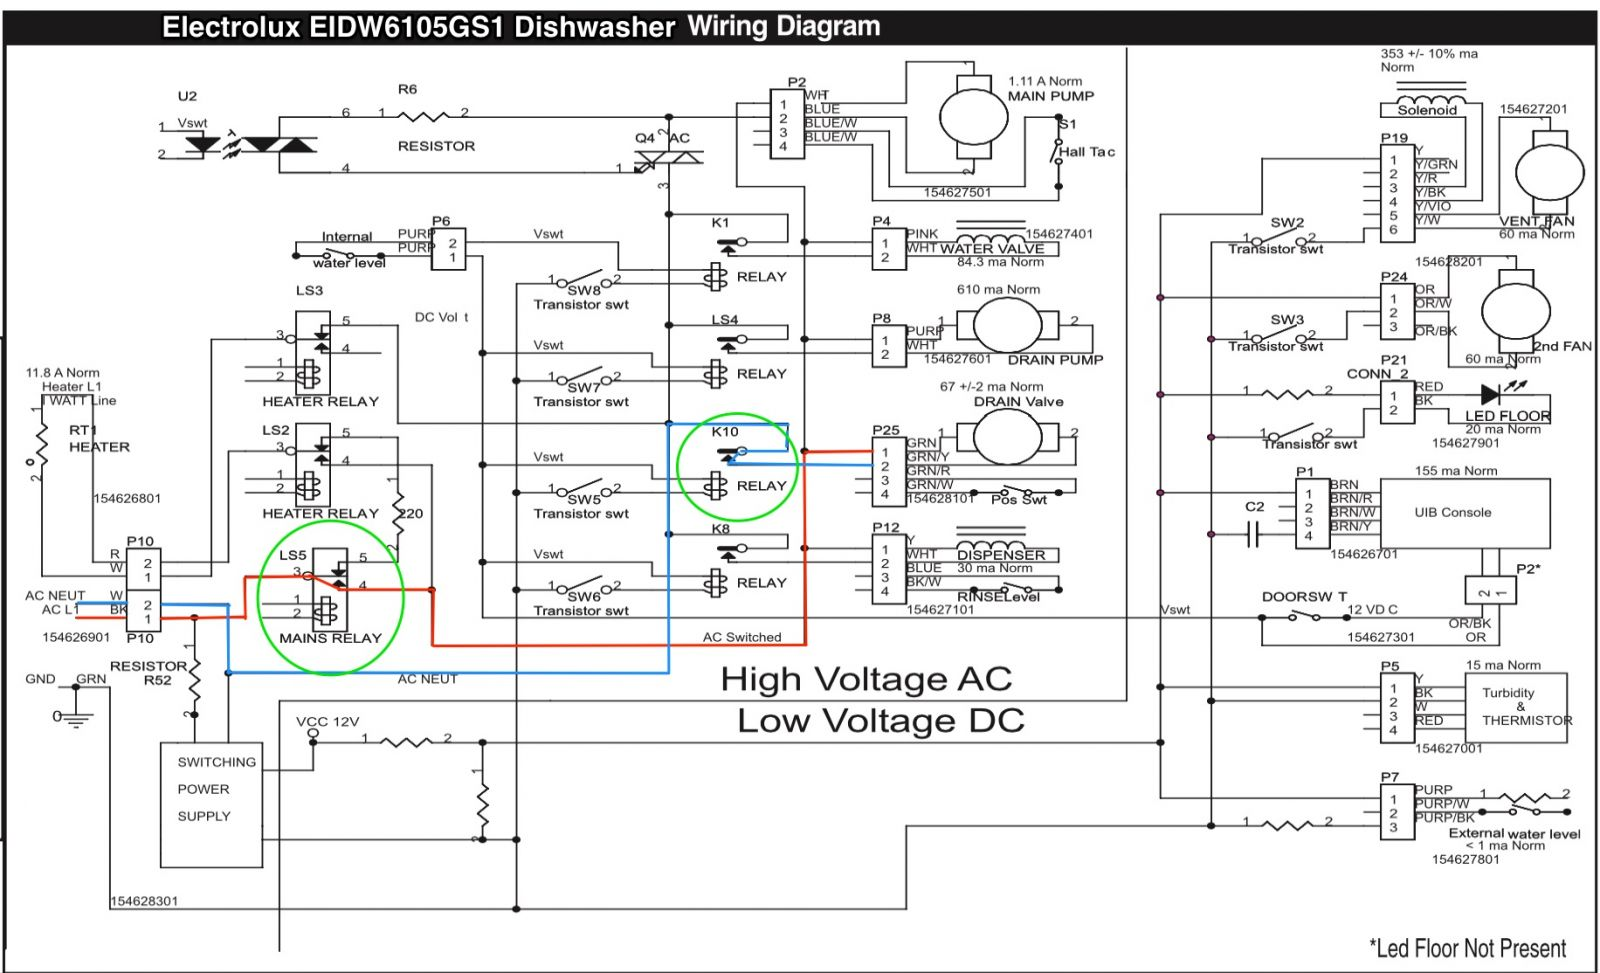 Electrolux Eidw6105gs1 Dishwasher Wiring Diagram